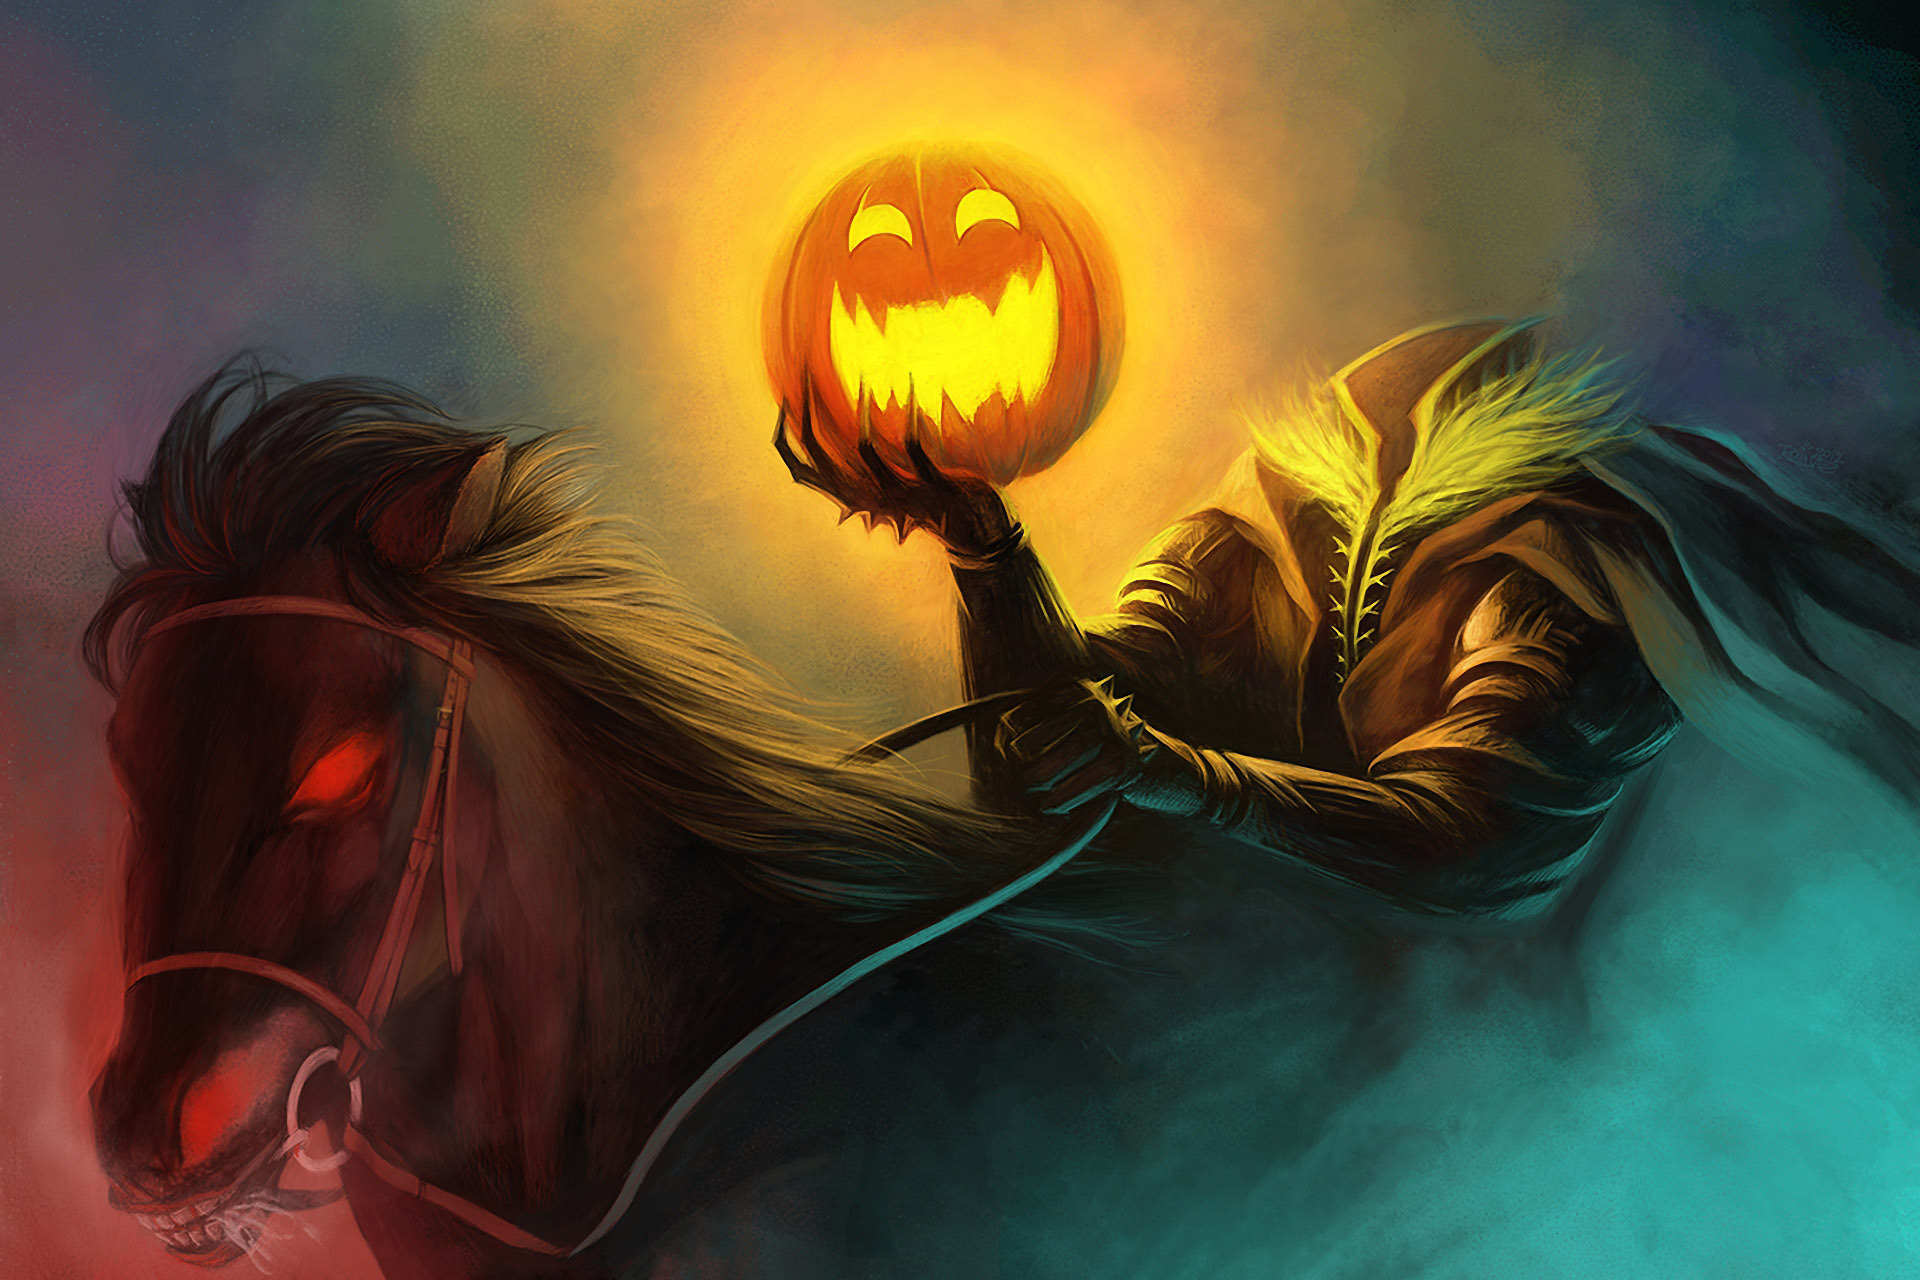 Must see Wallpaper Horse Halloween - 36307-1920x1280  Pic_182071.jpg